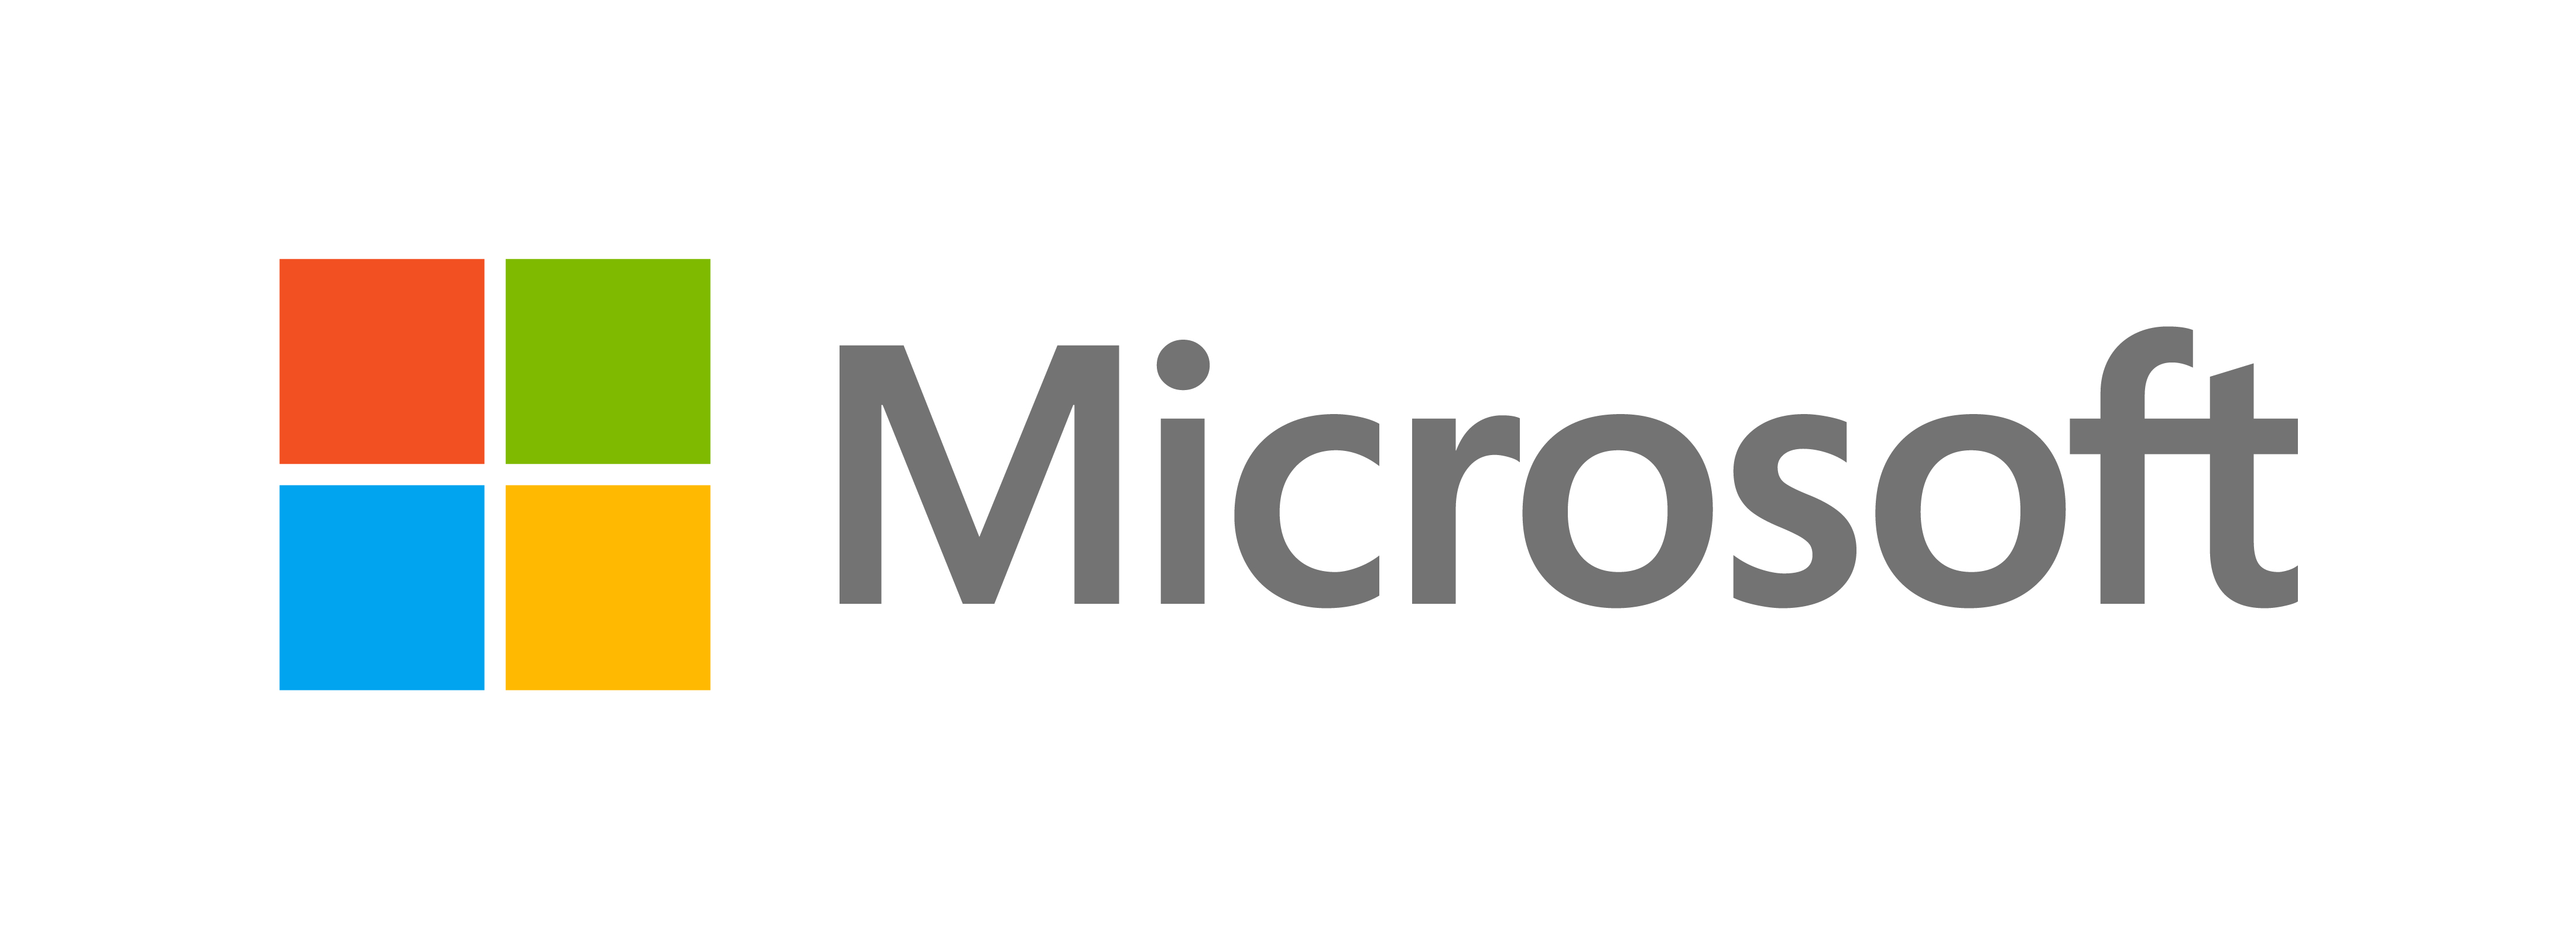 Microsoft has decided to Welcome Google and Apple